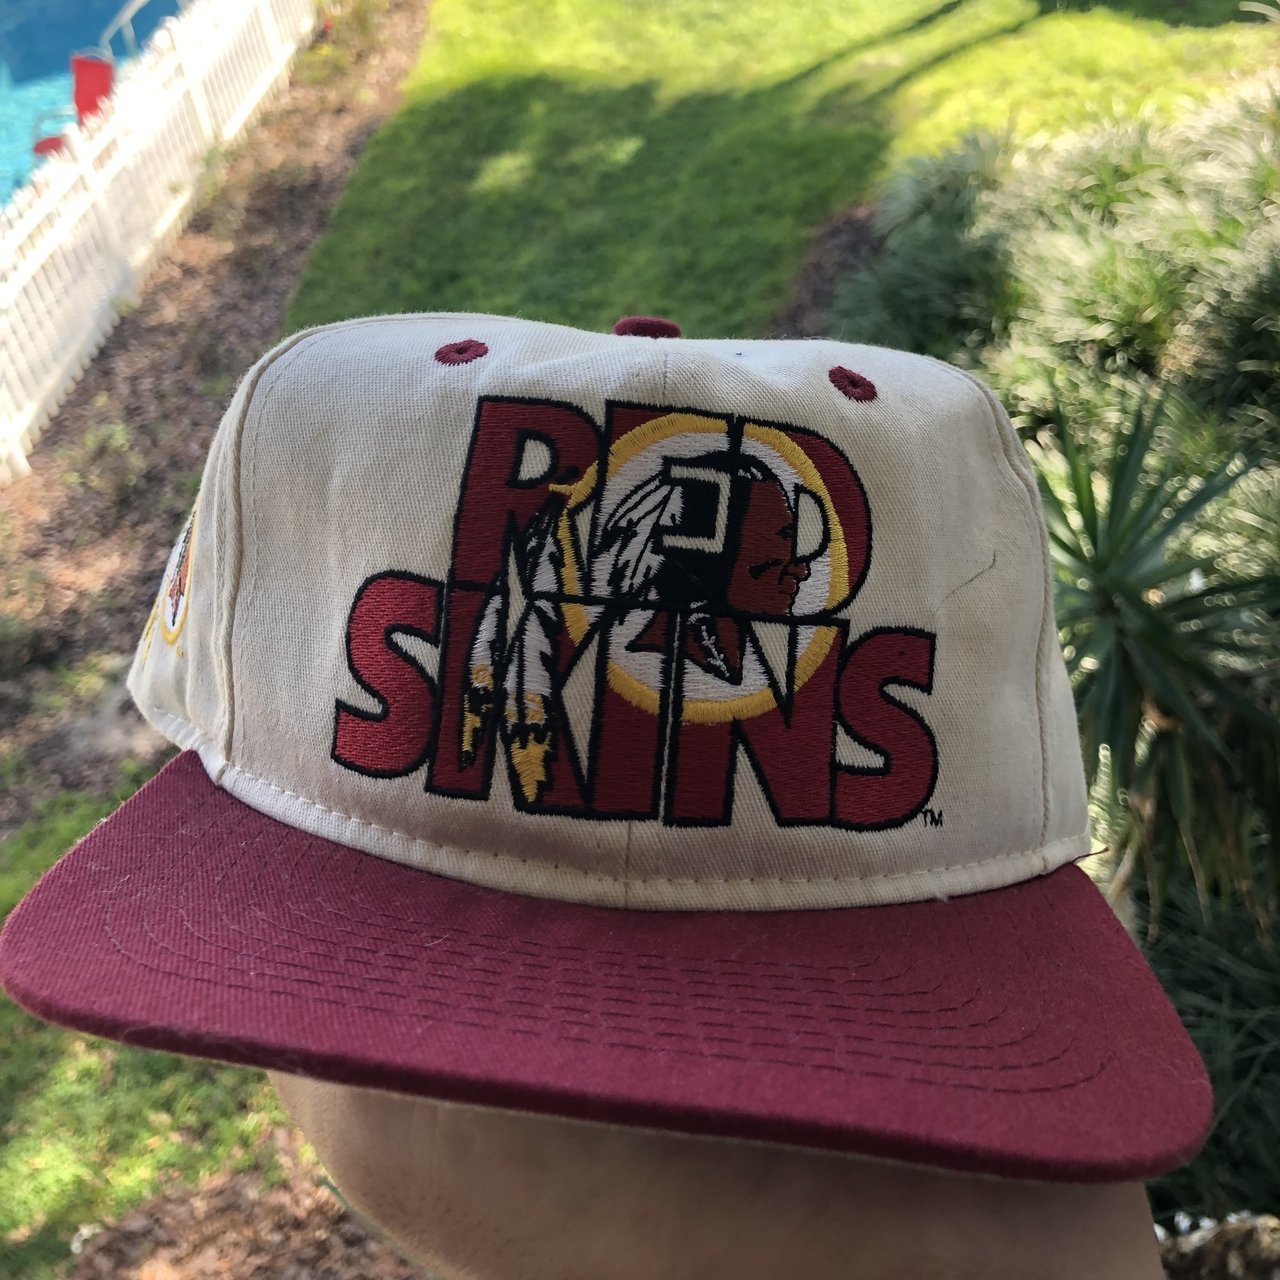 f4f474bb976 Vintage Washington Redskins hat in great condition with no - Depop